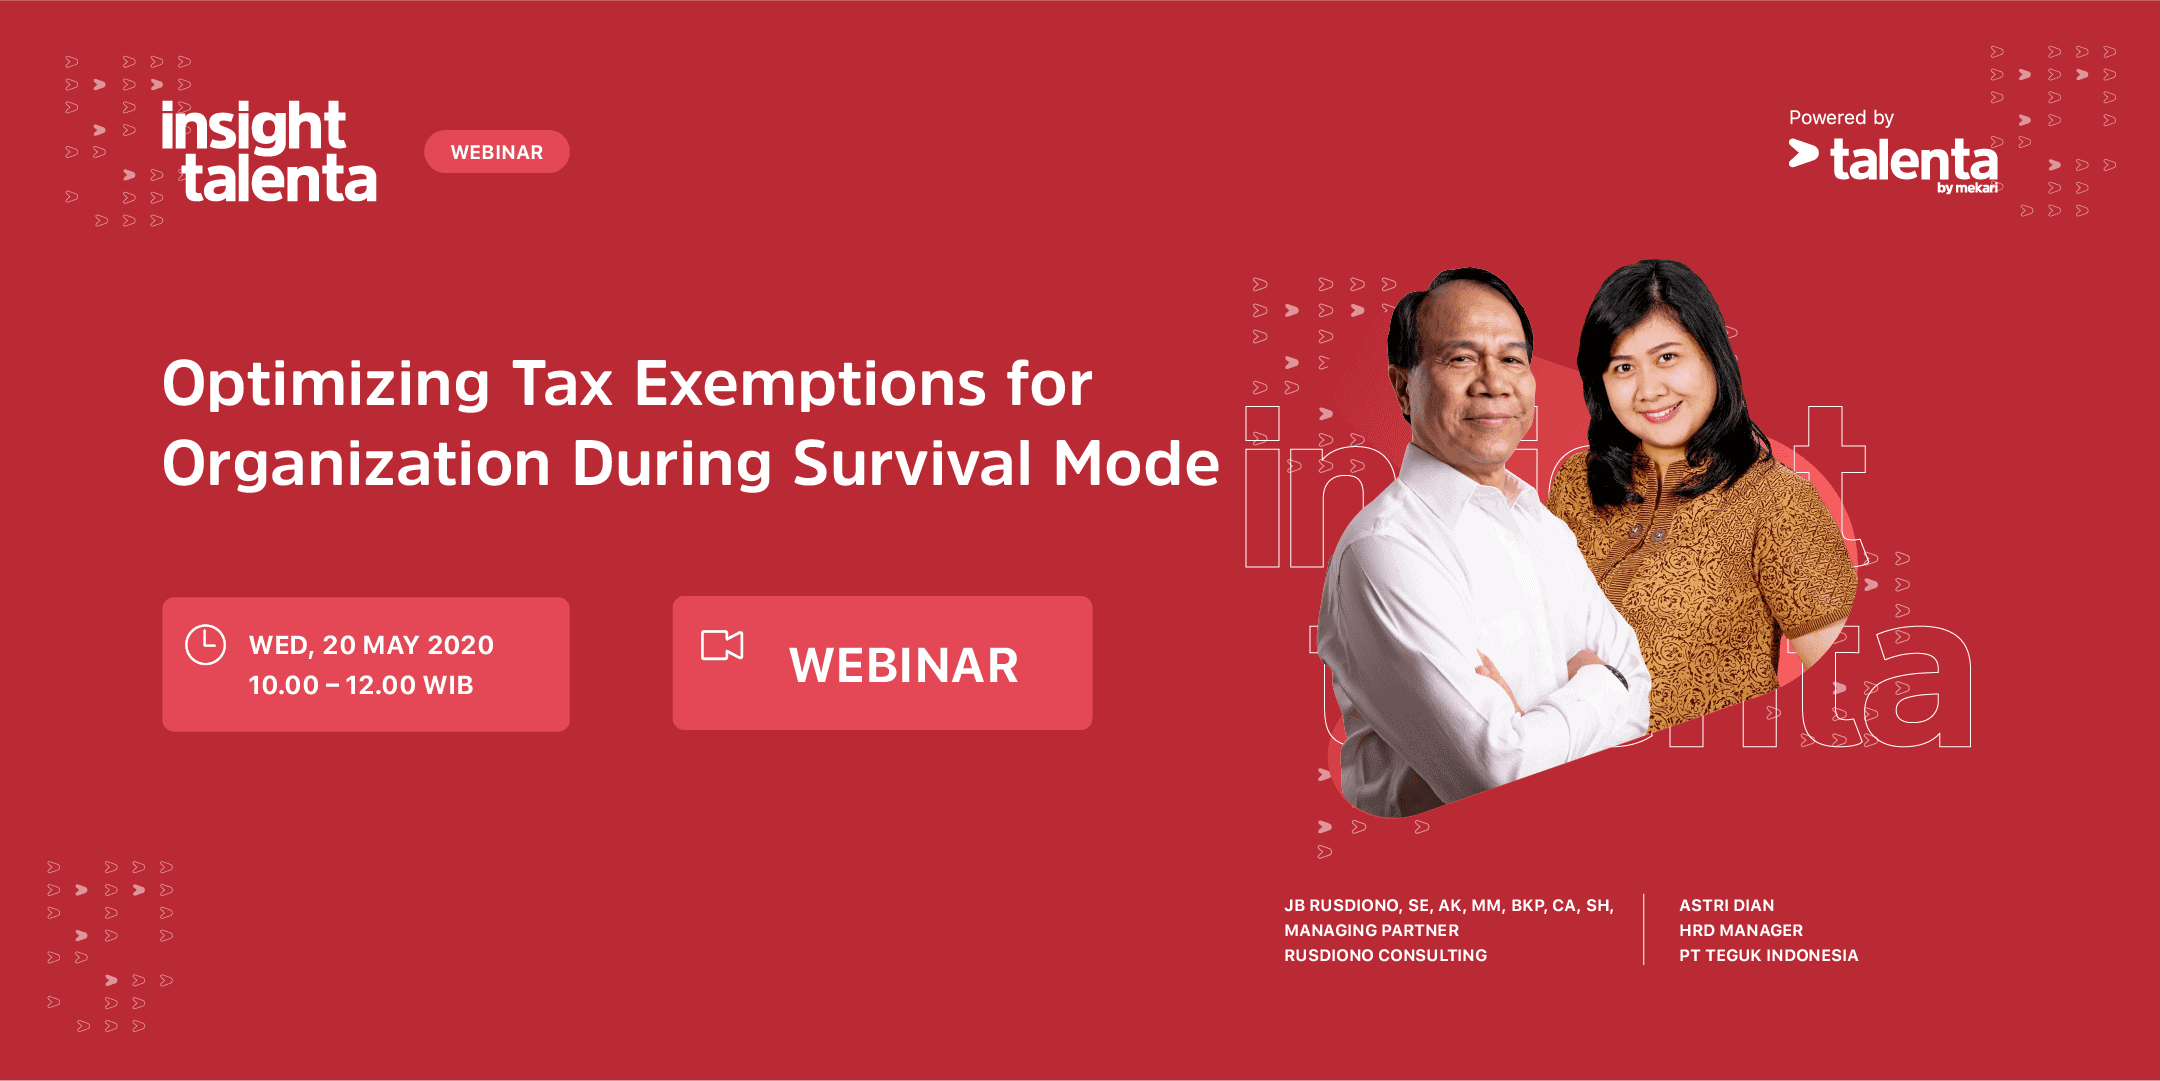 Insight Talenta – Optimizing Tax Exemptions for Organization During Survival Mode